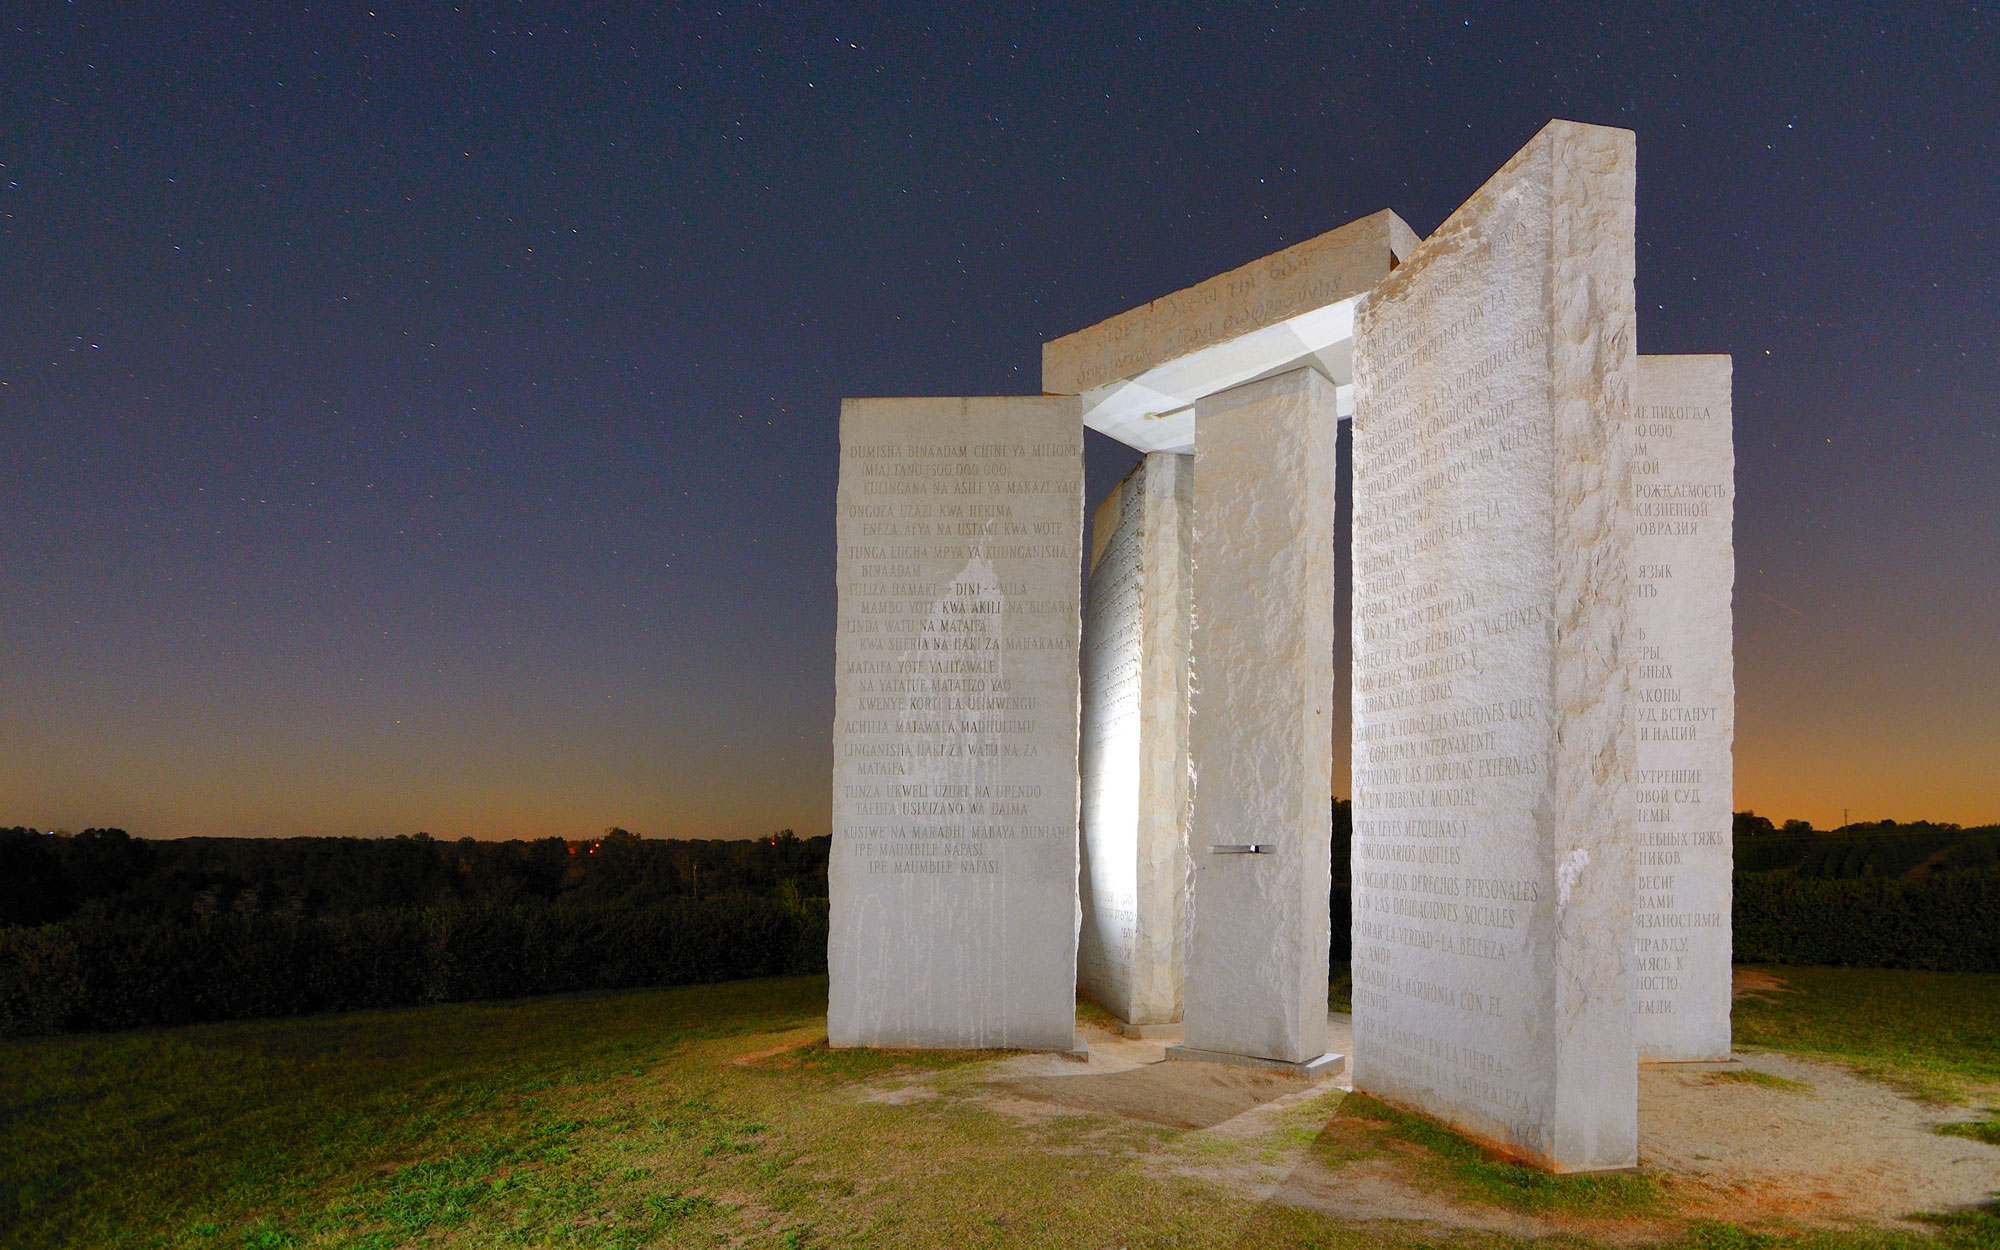 Weirdest Roadside Attractions: Georgia: Georgia Guidestones